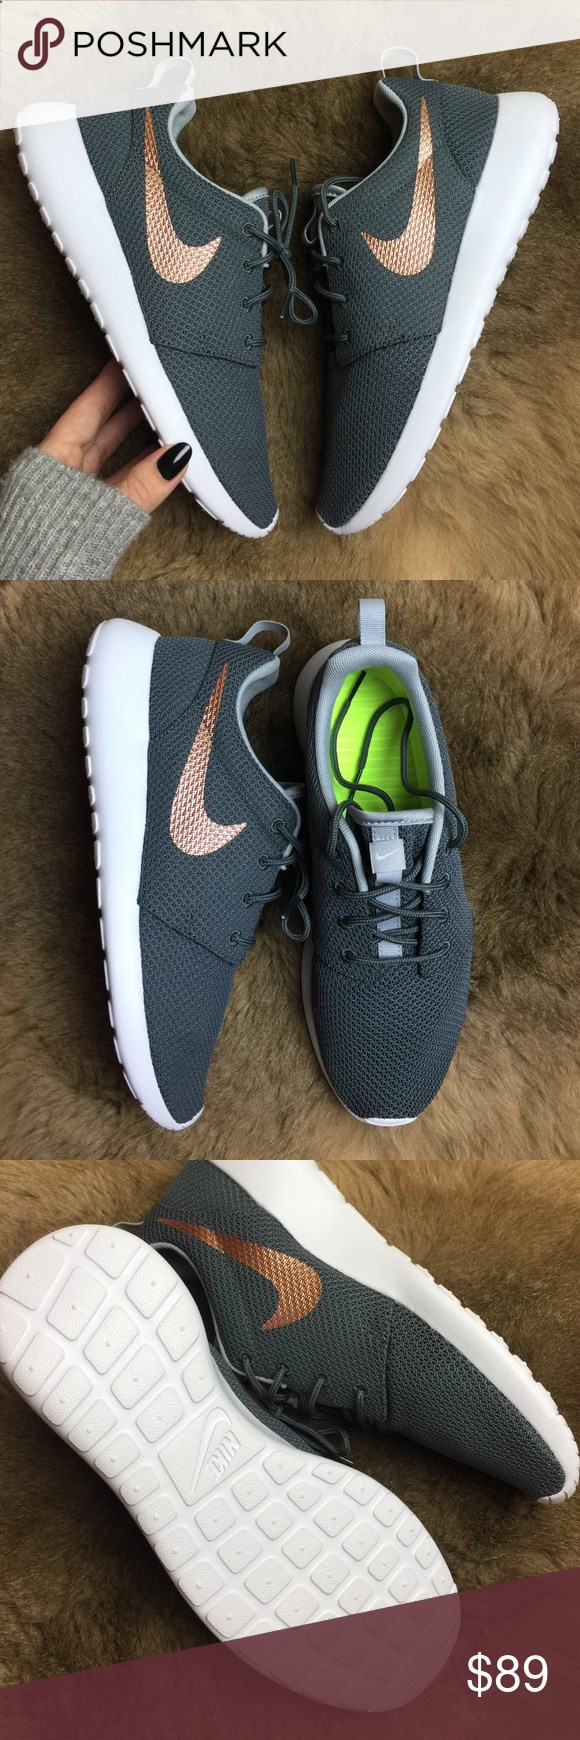 6195316ee14ea NWT Nike ID custom rose gold swoosh Brand new no box Nike id roshe custom  grey wolf color with rose gold swoosh! No trades!price is firm!